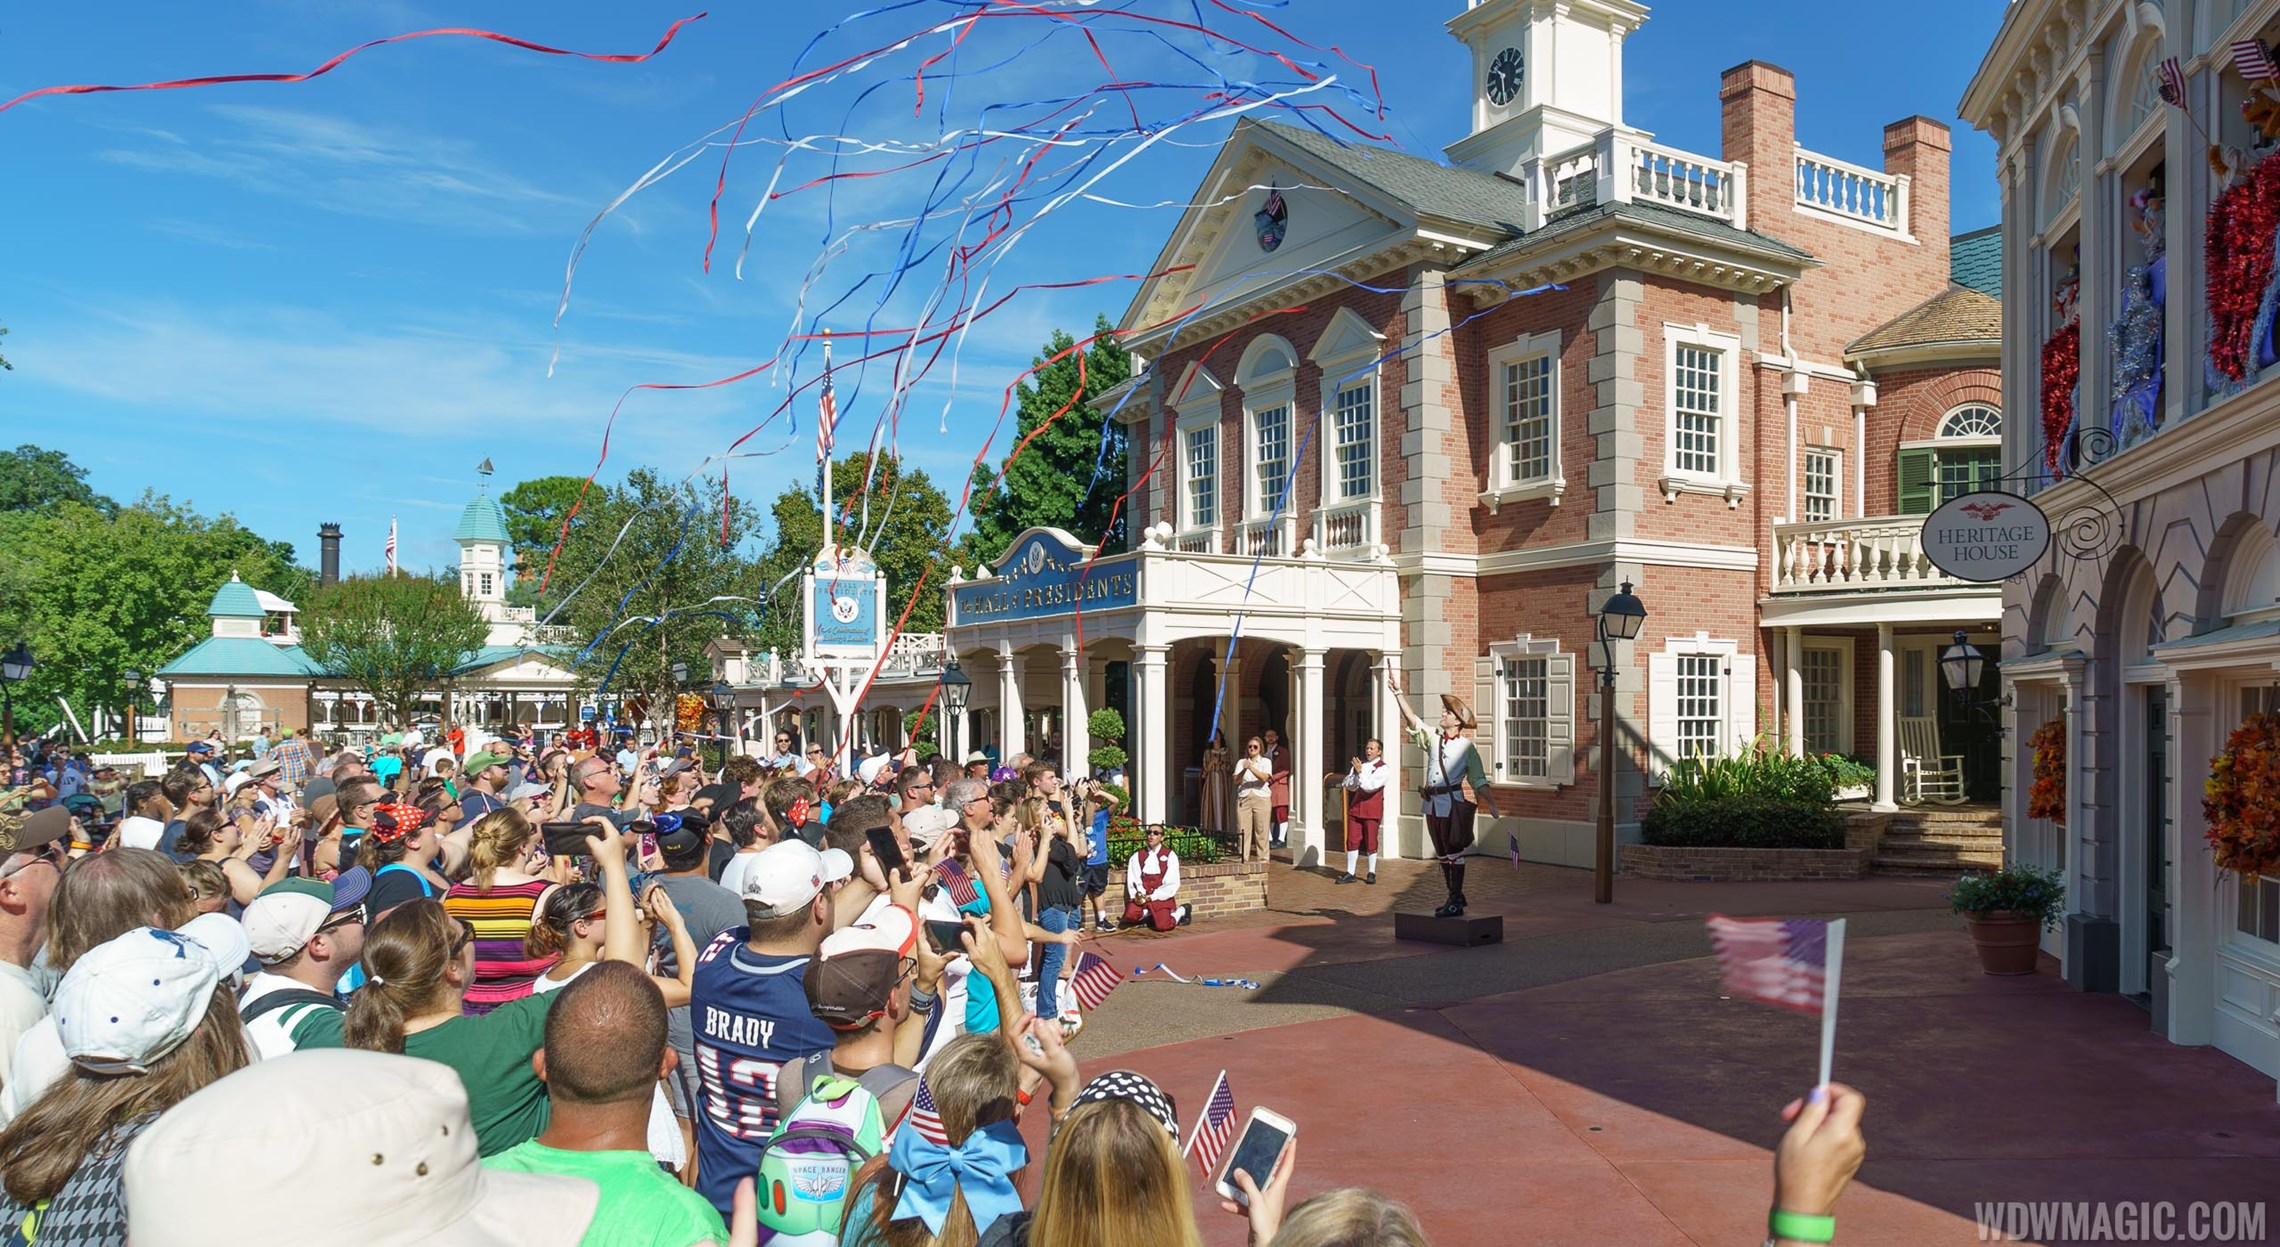 New at the Magic Kingdom - 'The Muppets Present... Great Moments in American History'